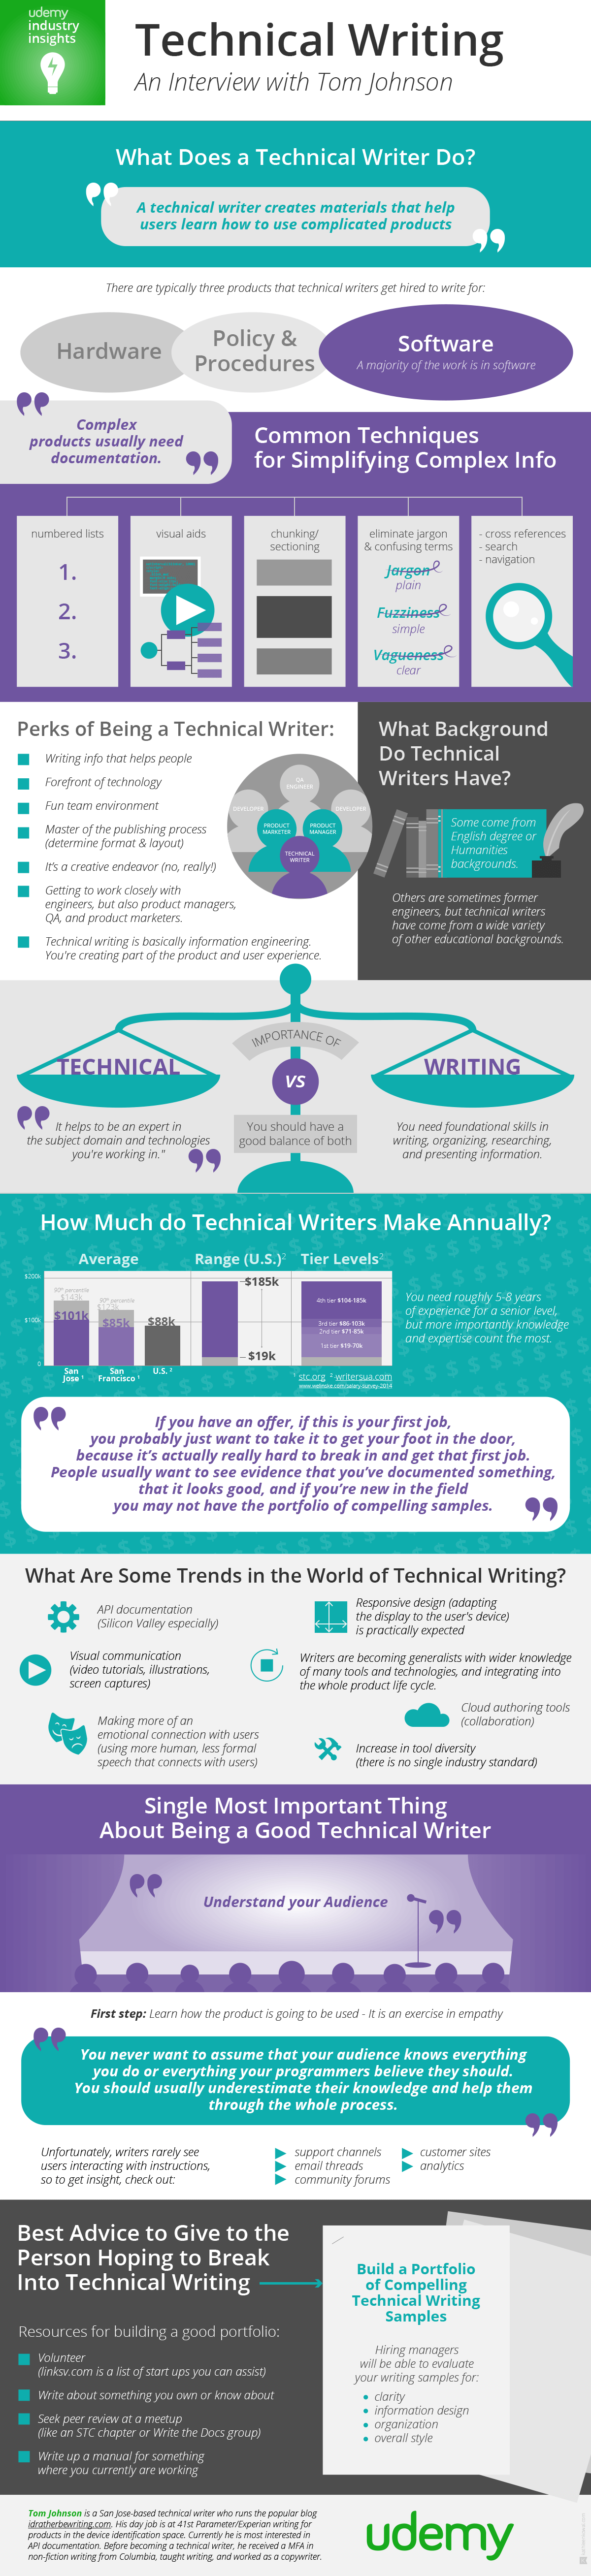 Udemy Industry Insights Podcast Infographic - Tech Writing